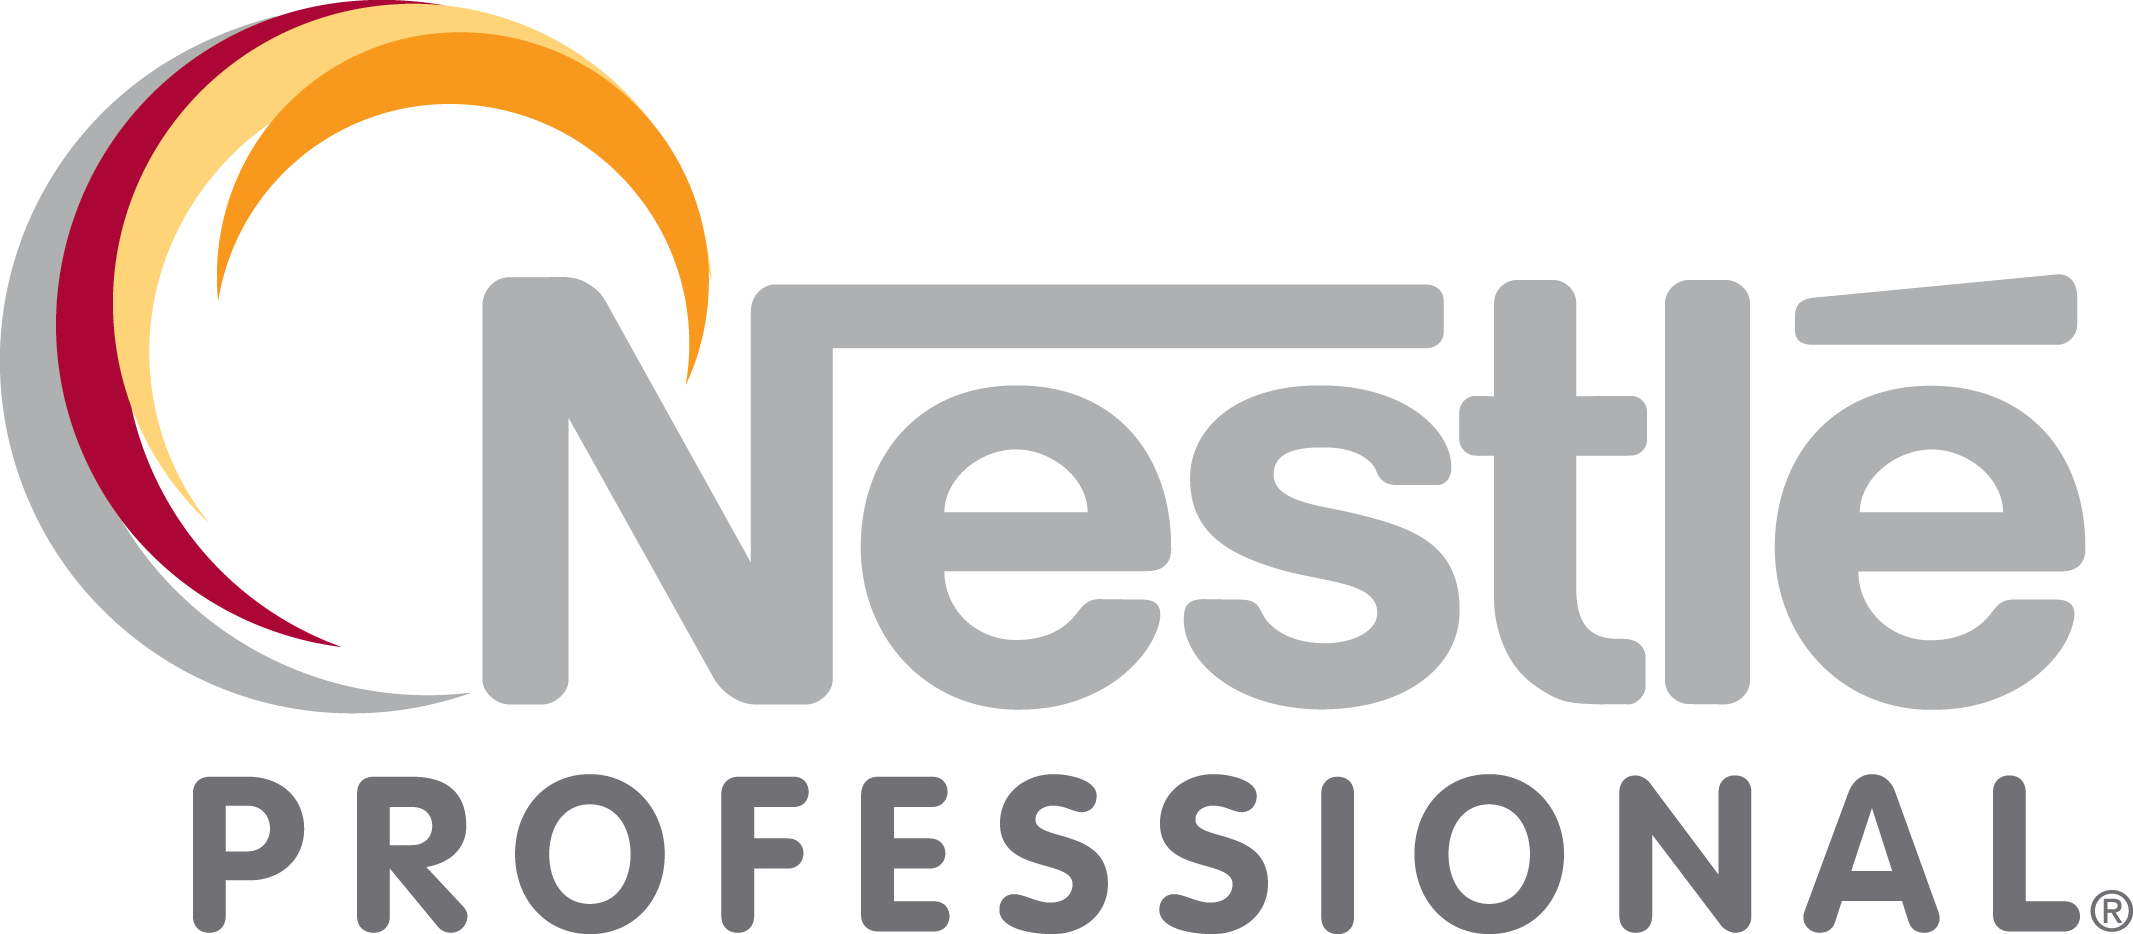 NESTLE PROFESSIONAL LOGO.png